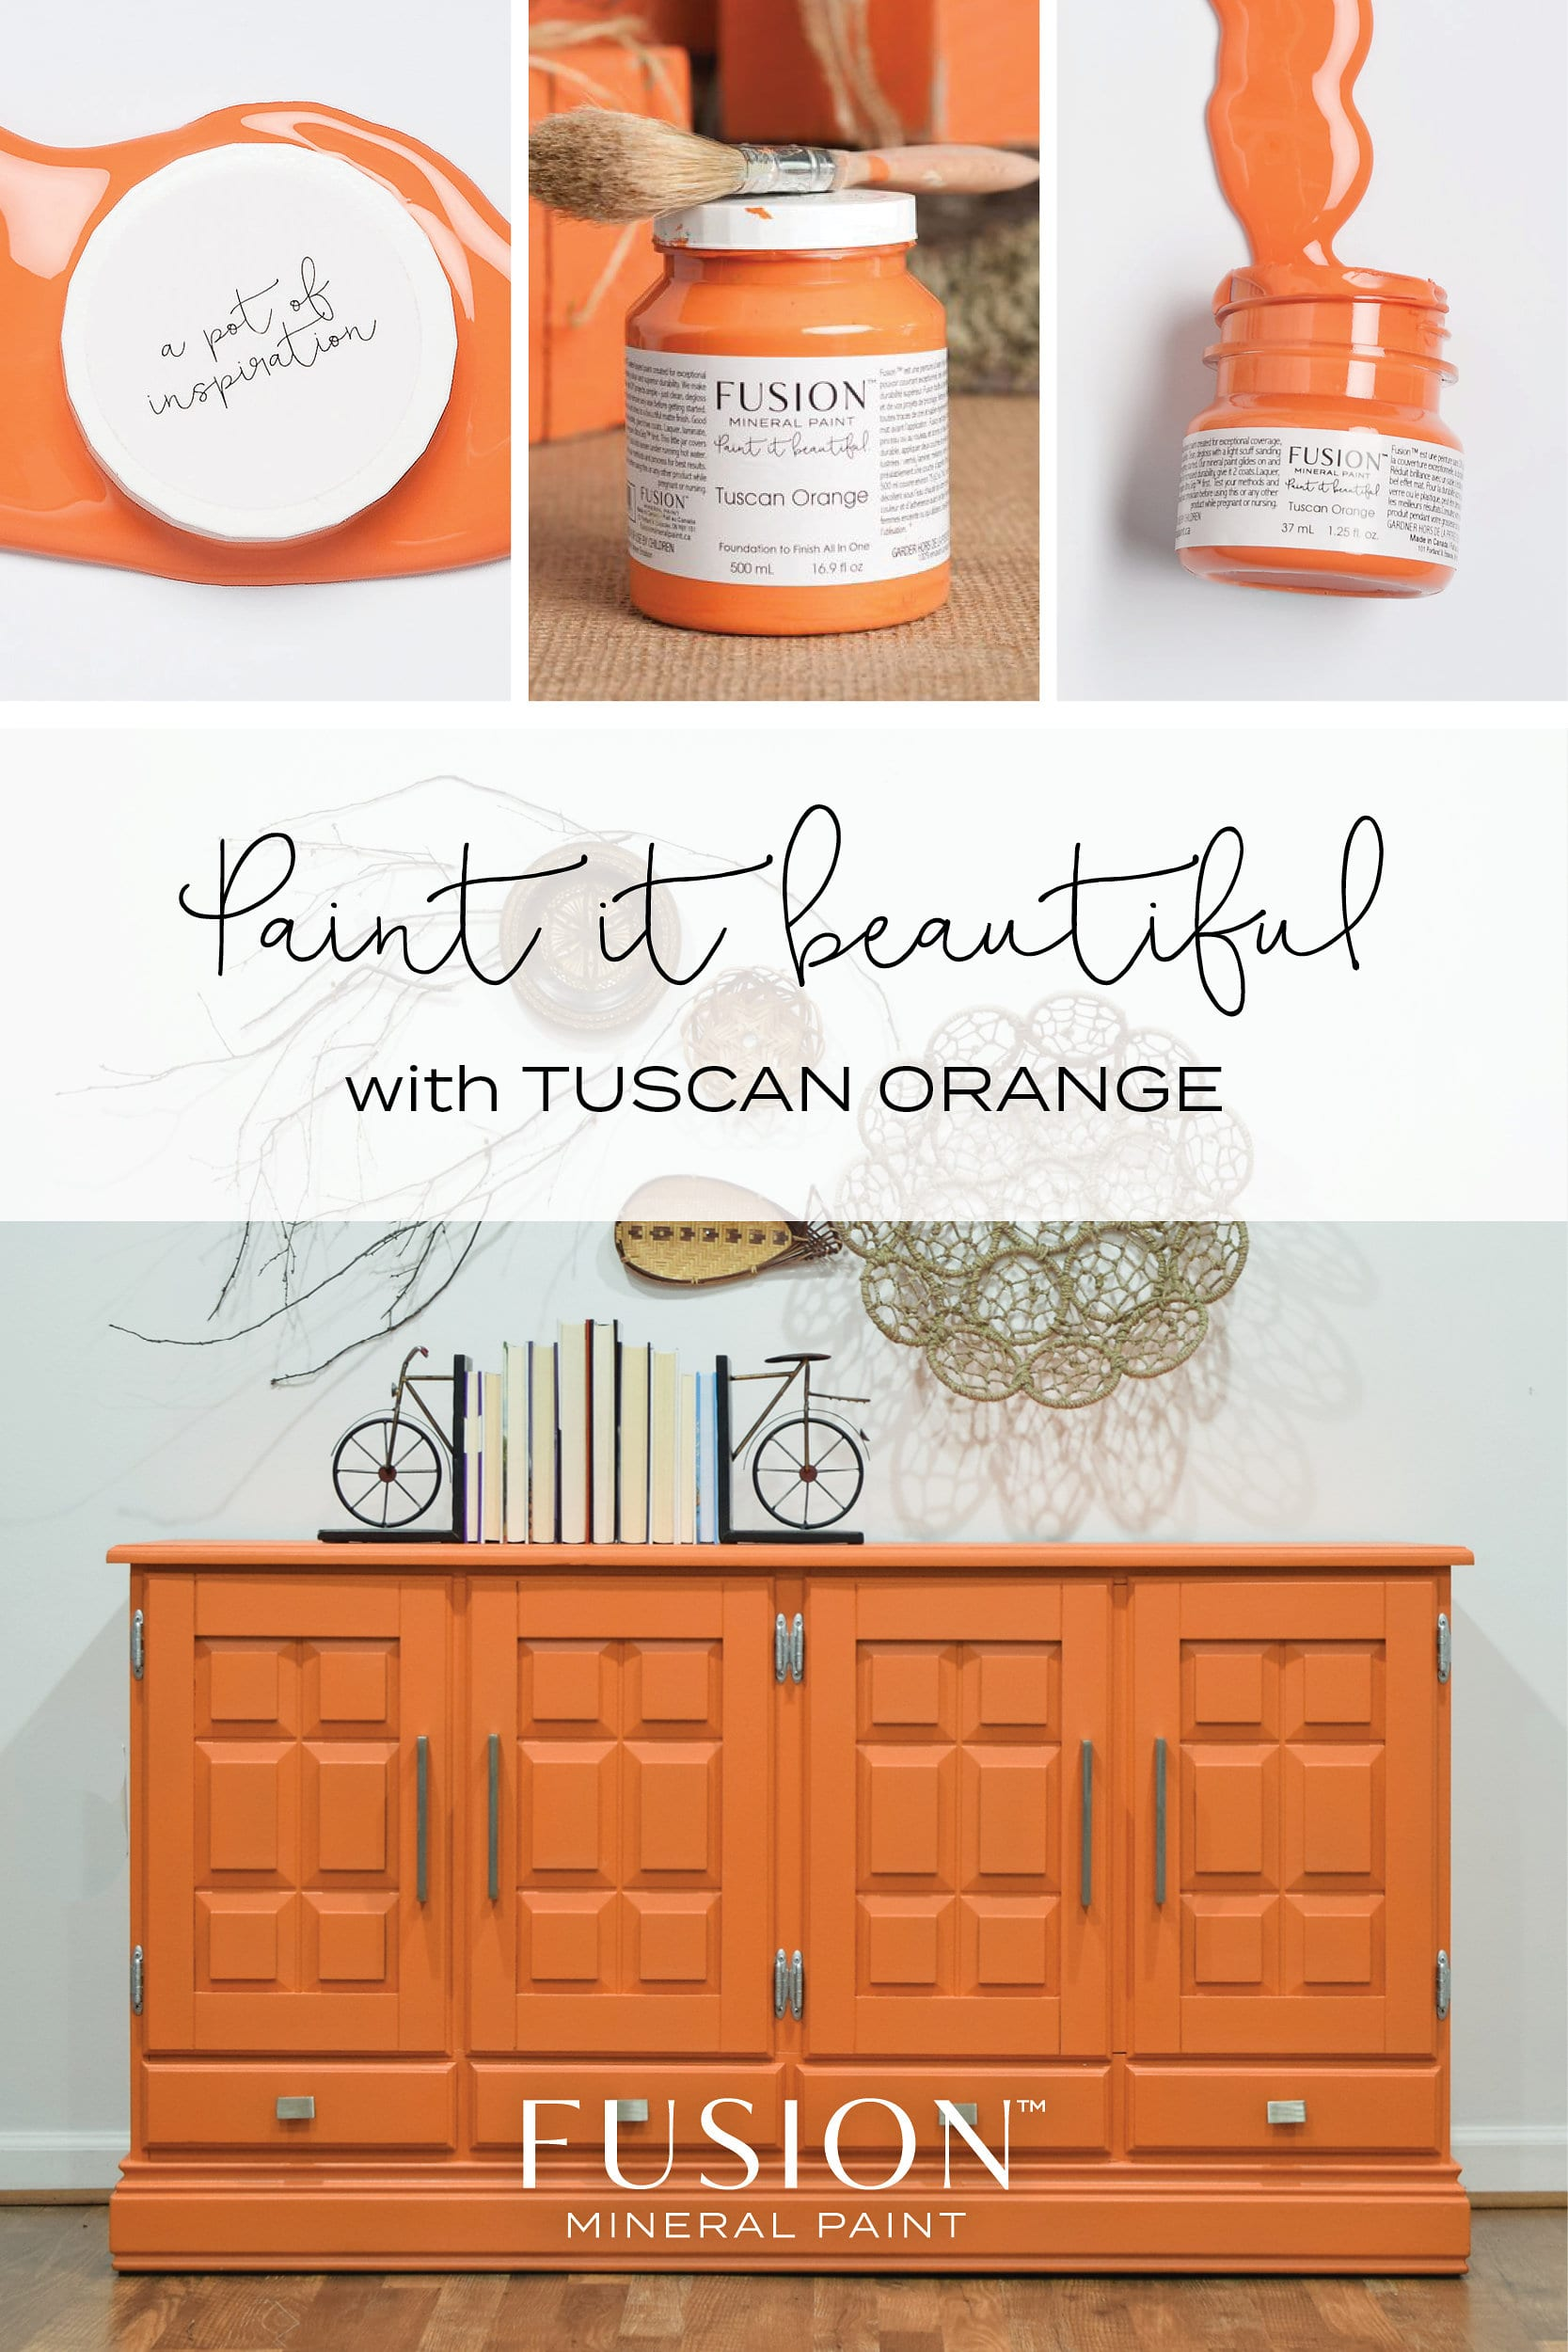 Fusion Mineral Paint In Tuscan Orange